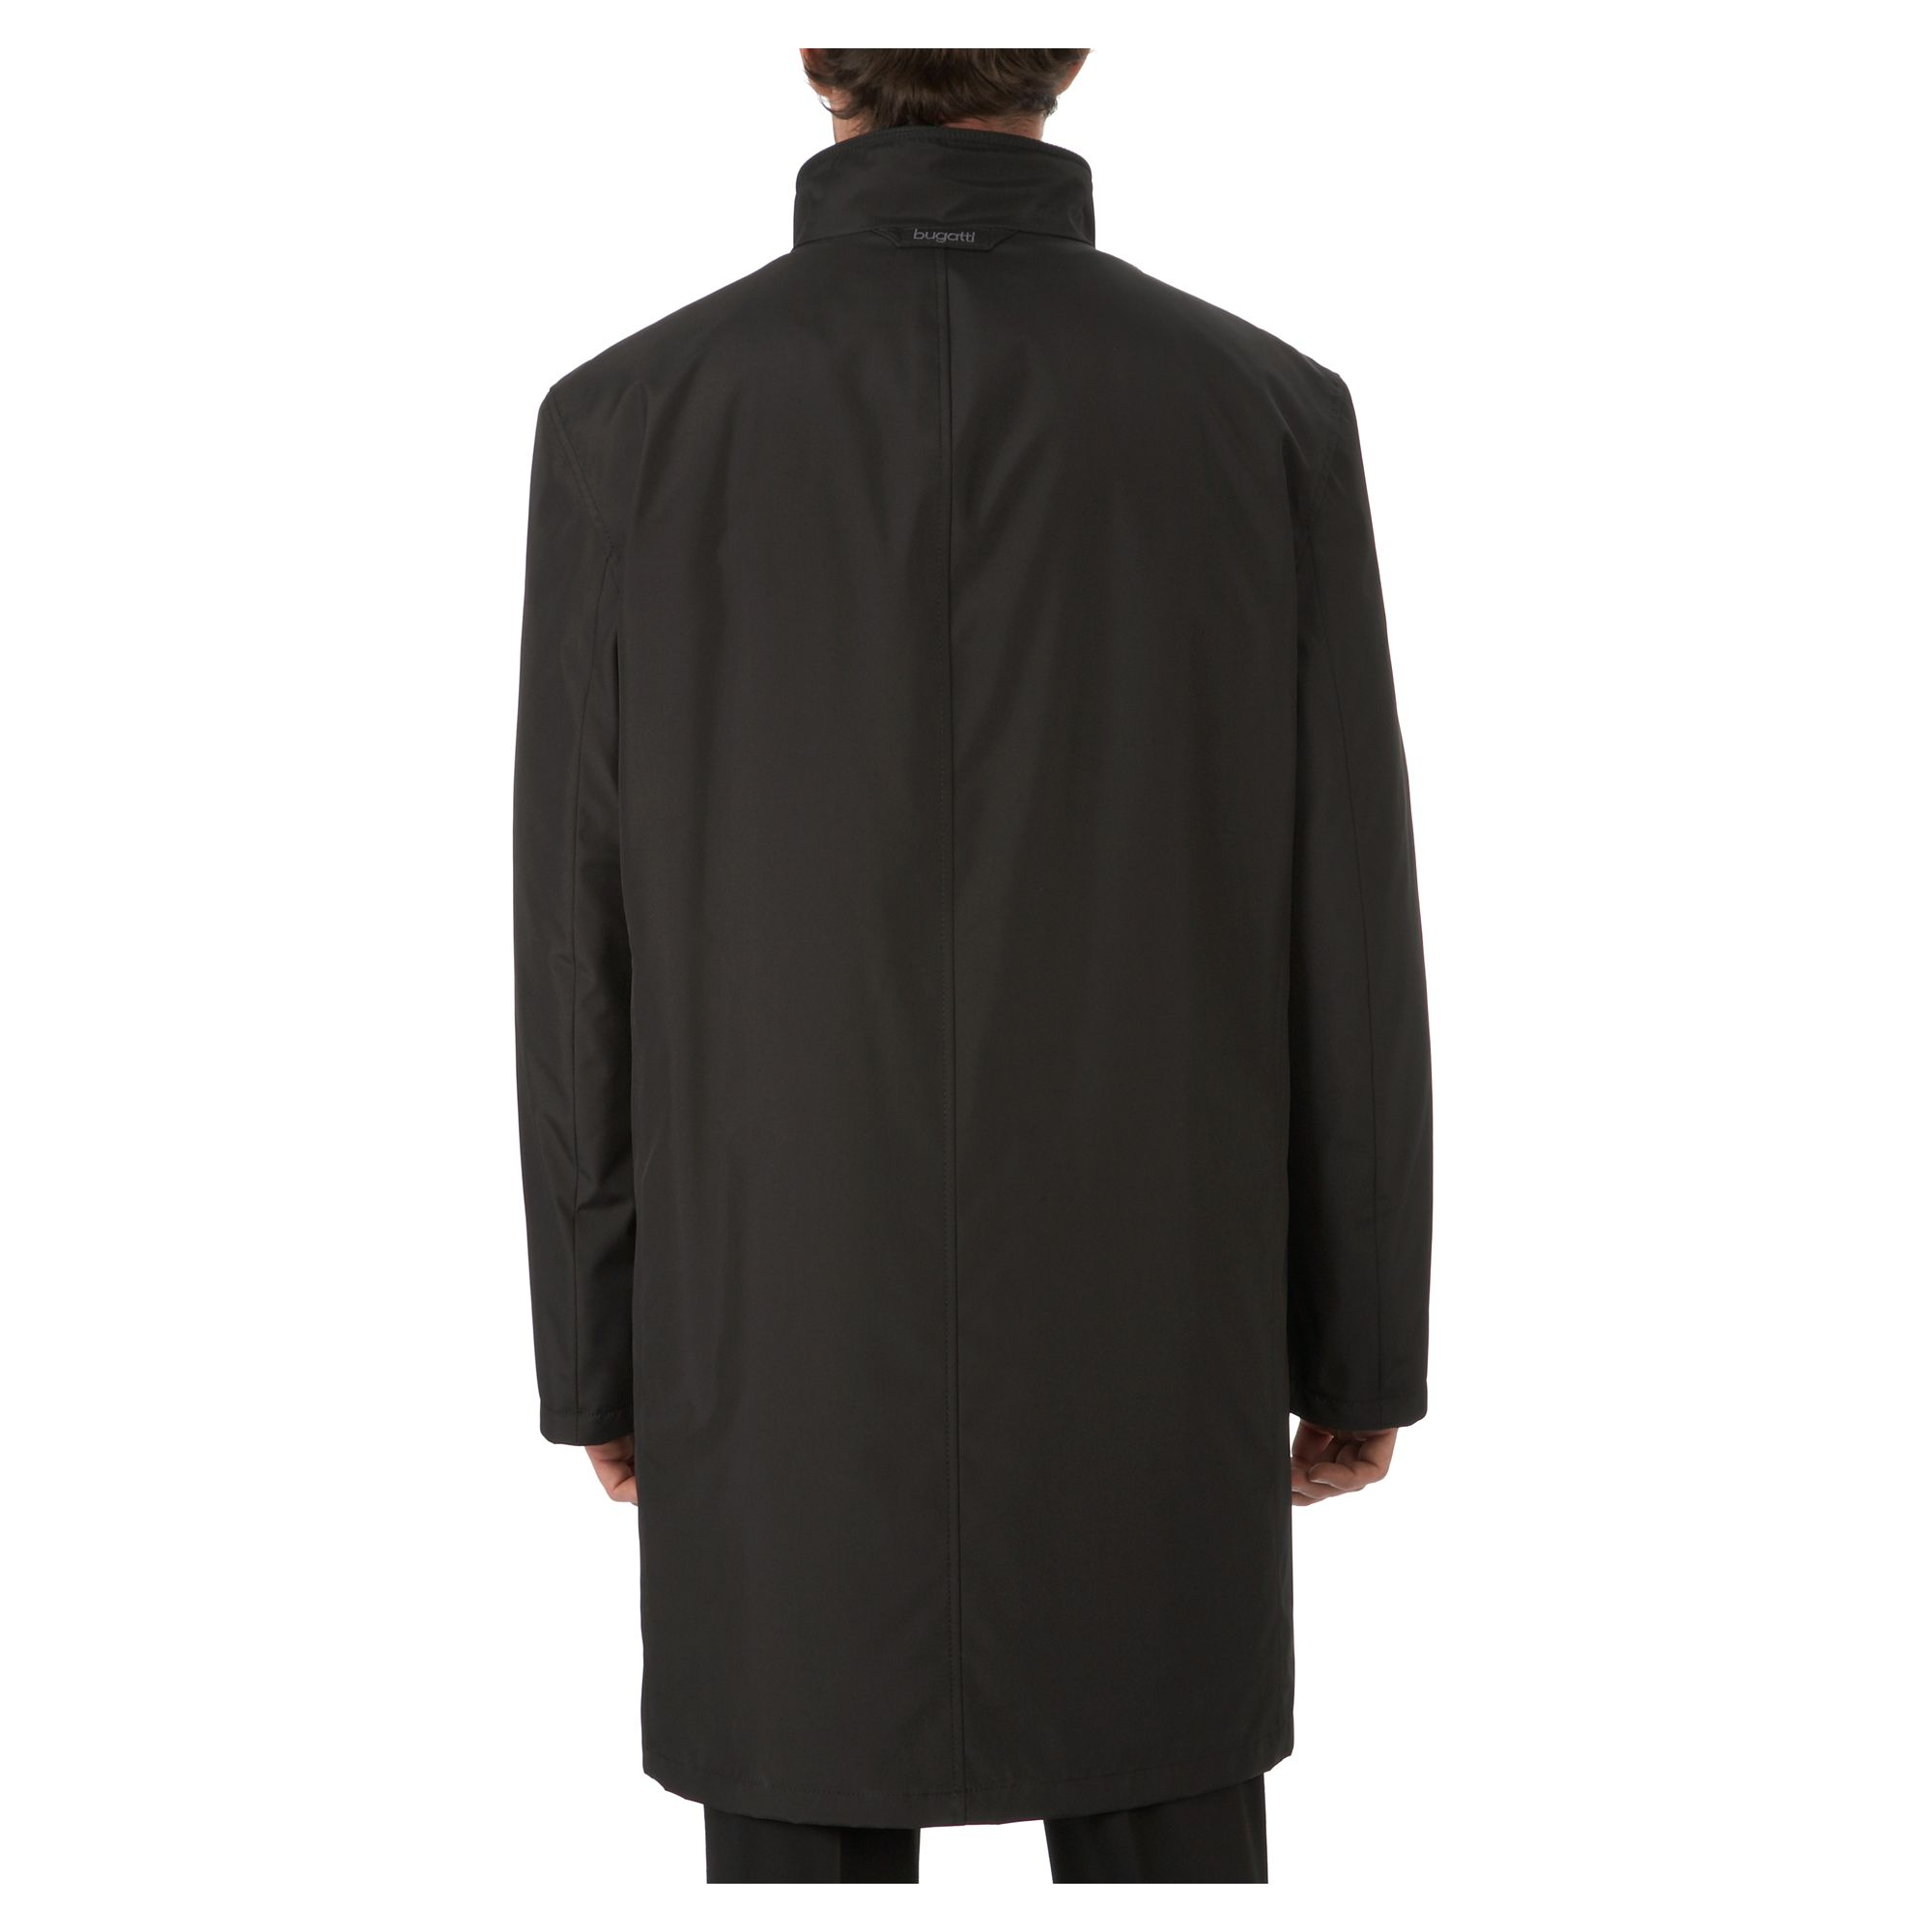 Funnel neck overcoat